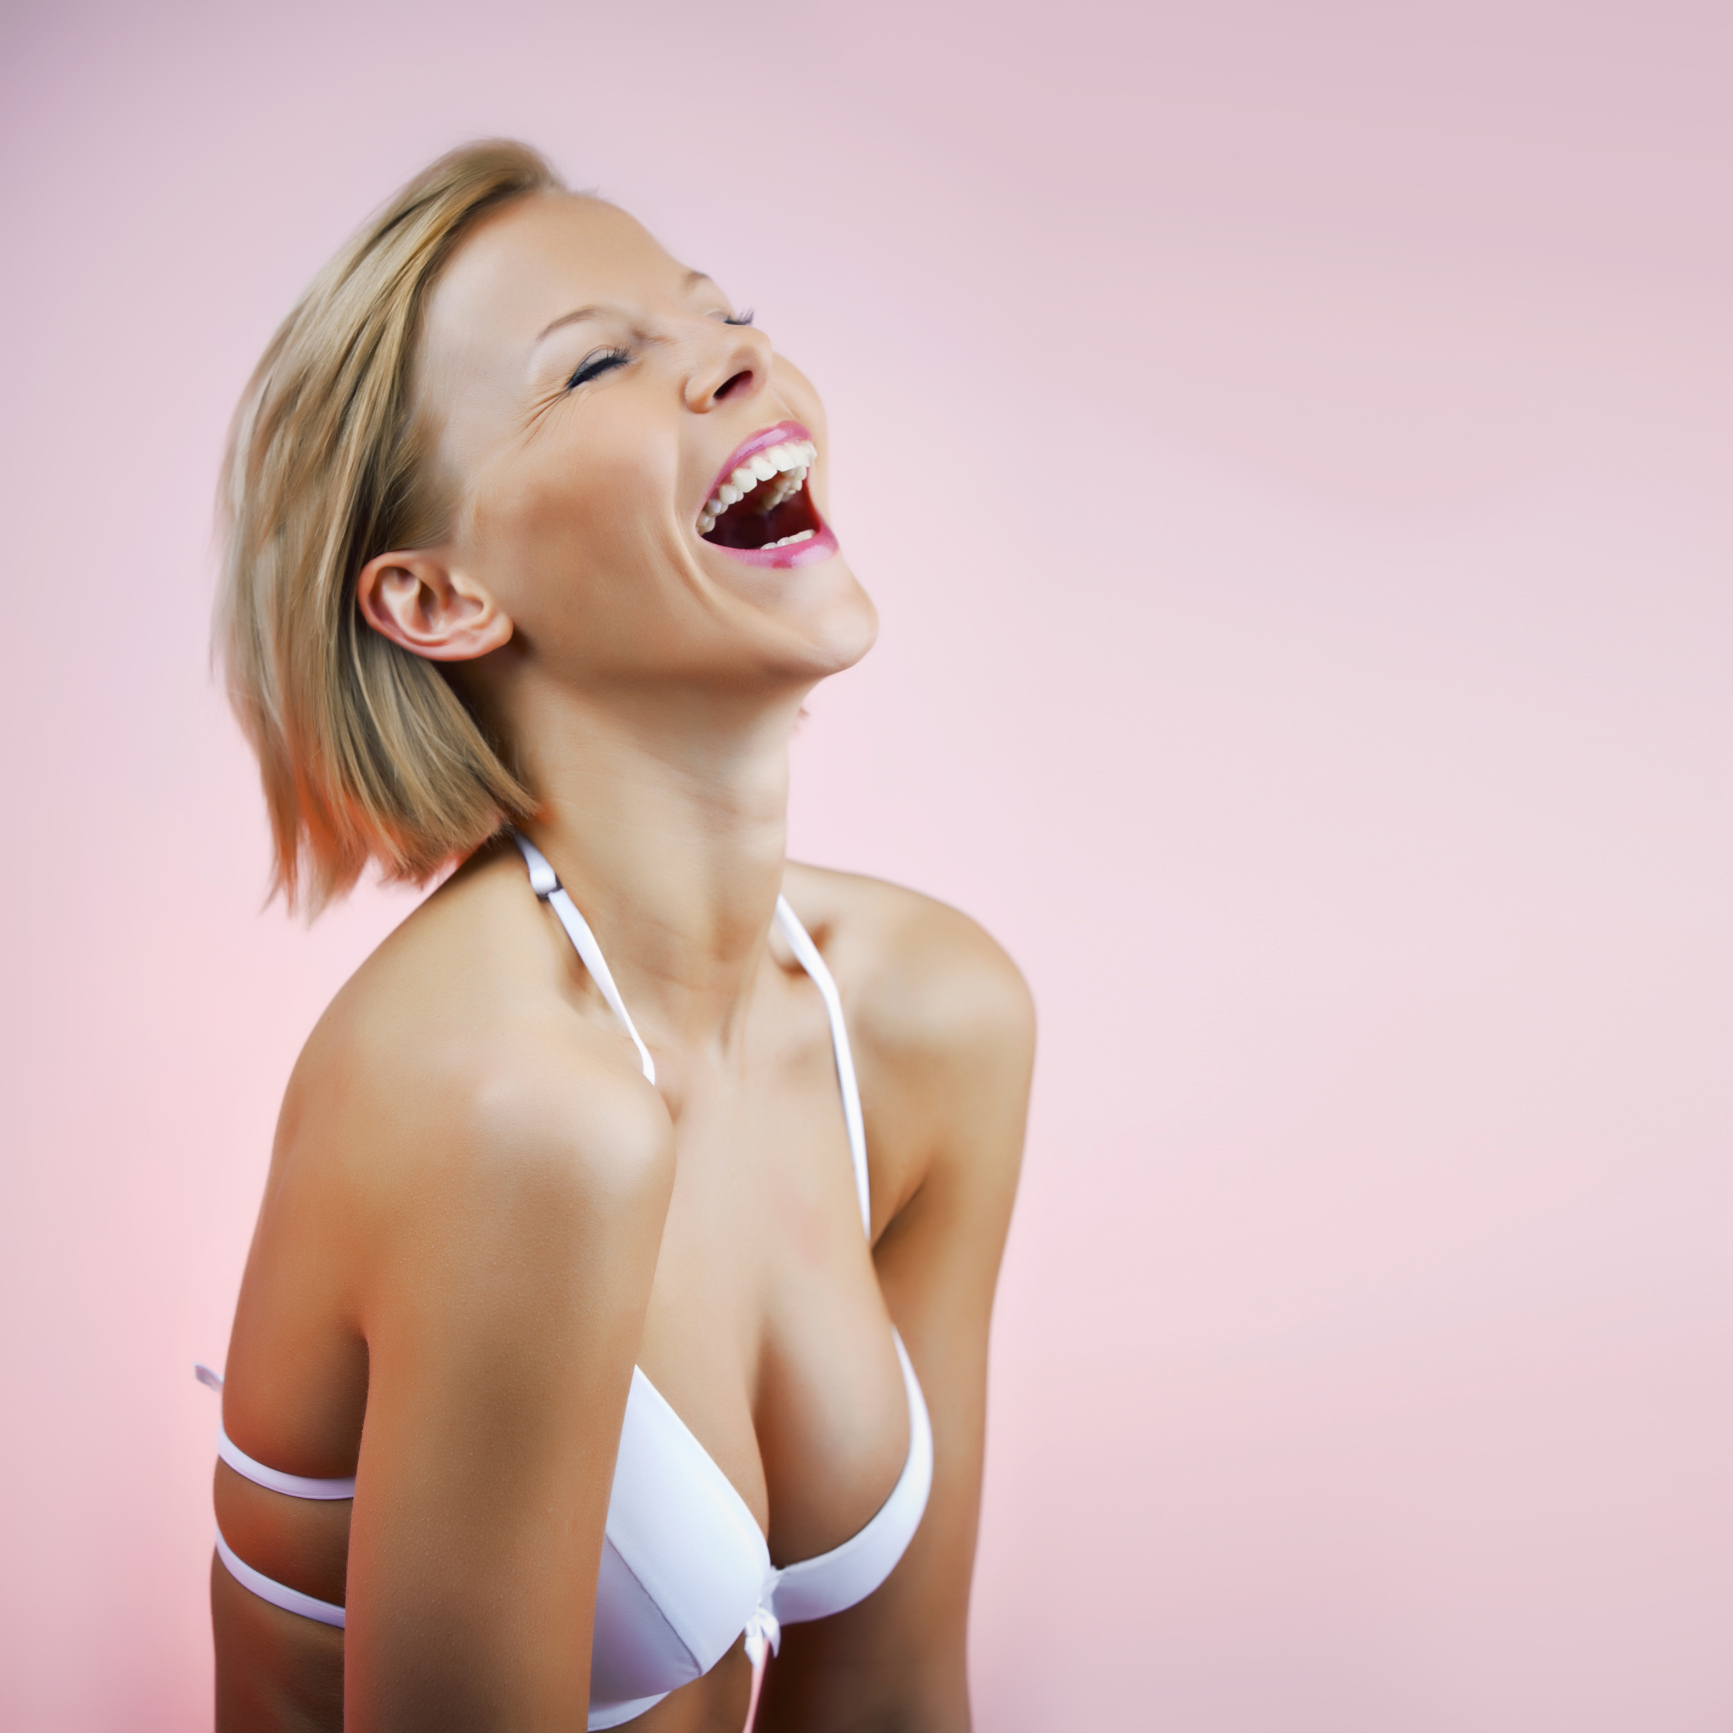 Young cheerful female in a bra